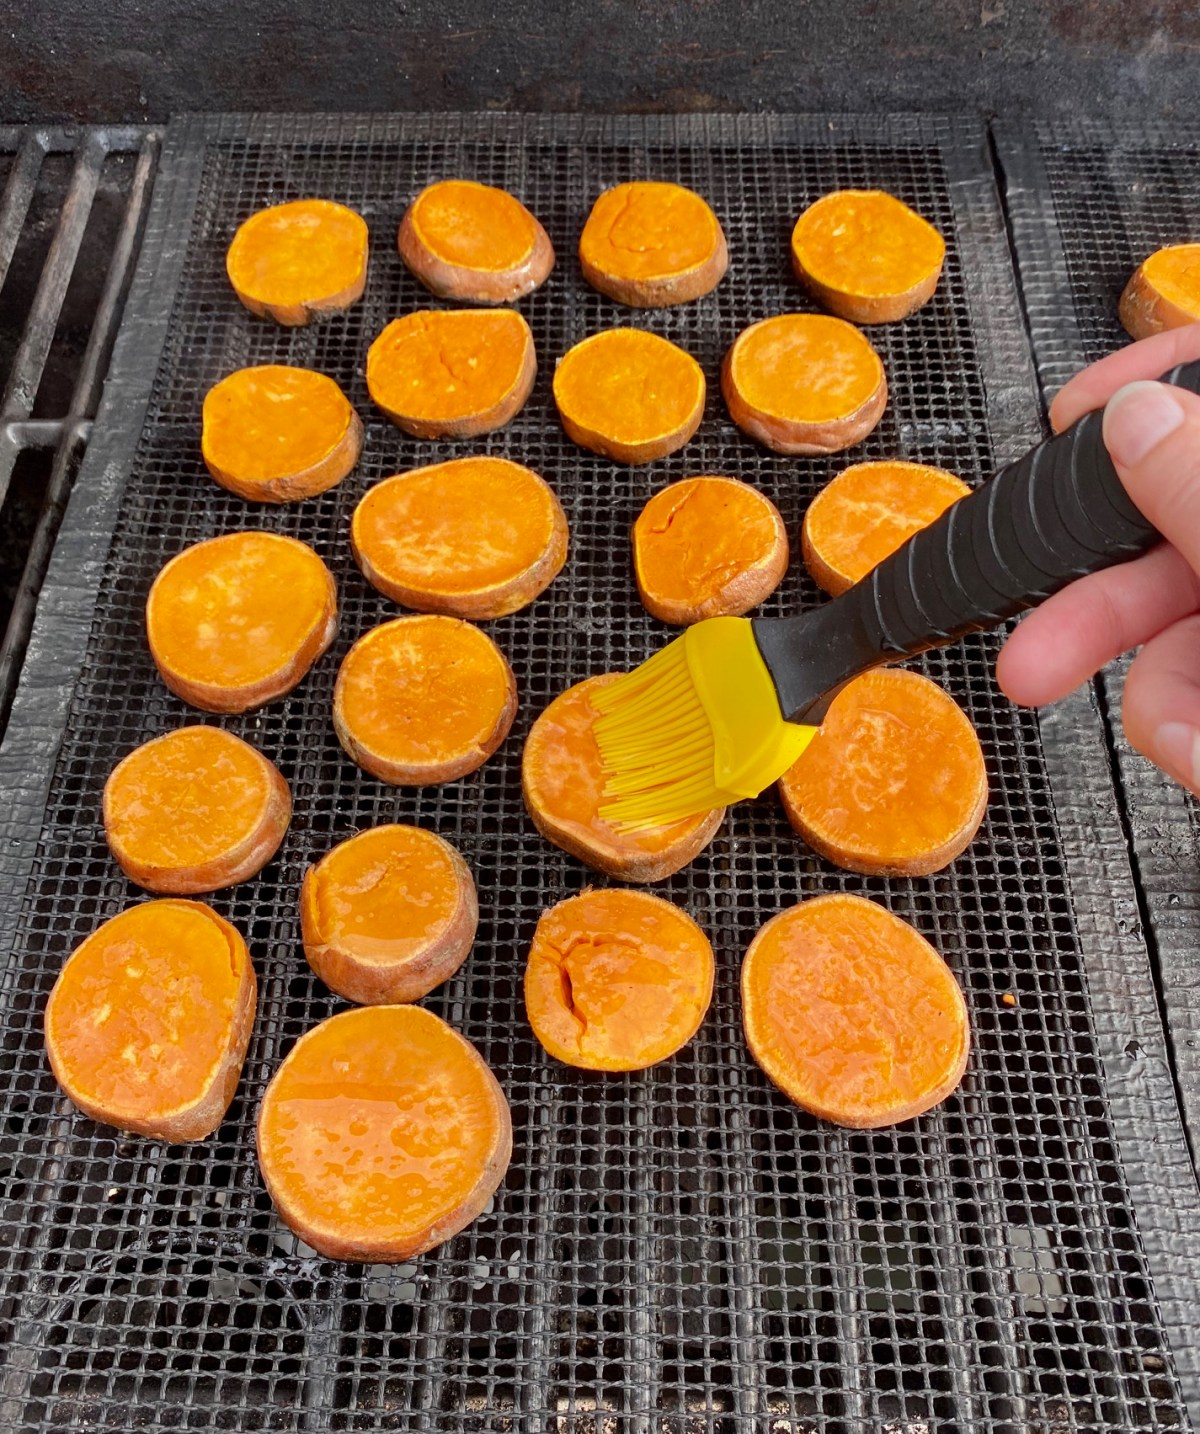 Sweet potato rounds cooking on a grill mat over medium heat. #sweetpotatoes #grilledsweetpotatoes #sweetpotatorecipes #howtogrillsweetpotatoes #howtogrillpotatoes #potatorecipes #potatoesonthegrill